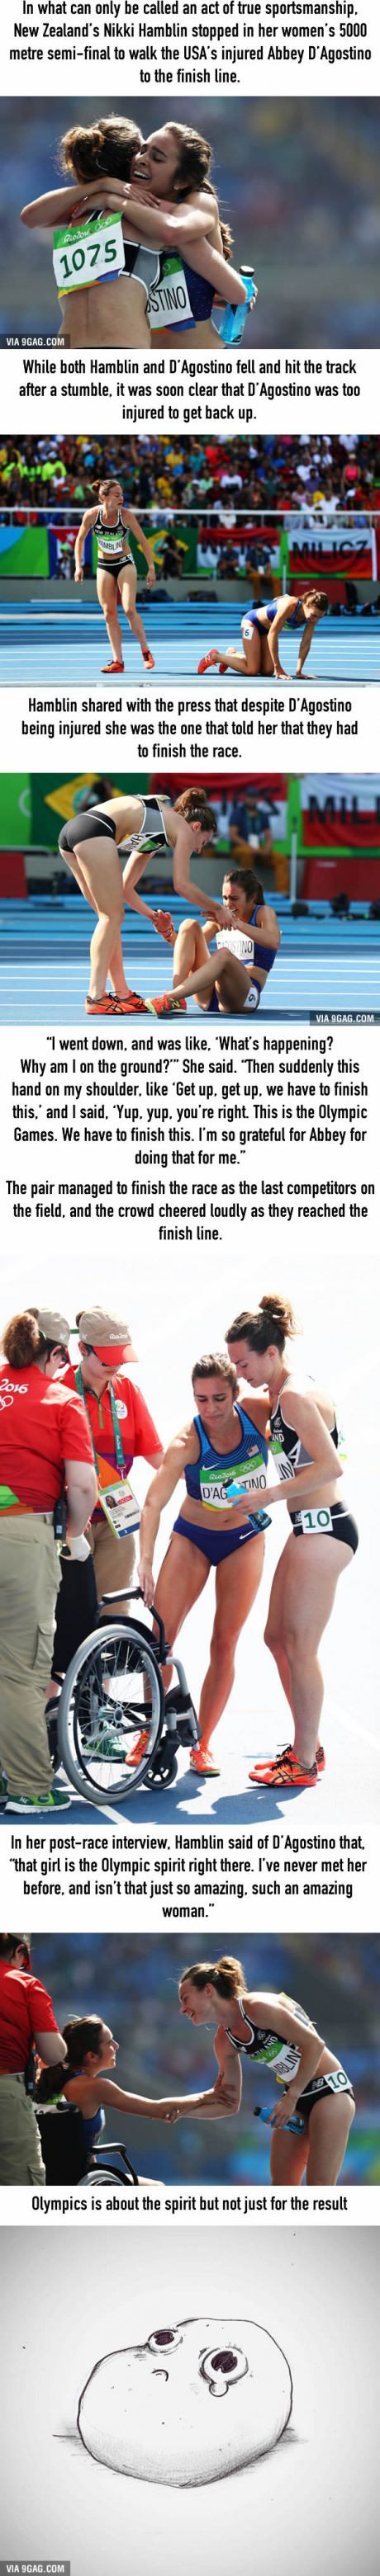 New Zealand's Runner Nikki Hamblin Stopped In Her Olympics Semi-Final To Help Her Injured Competitor Finish